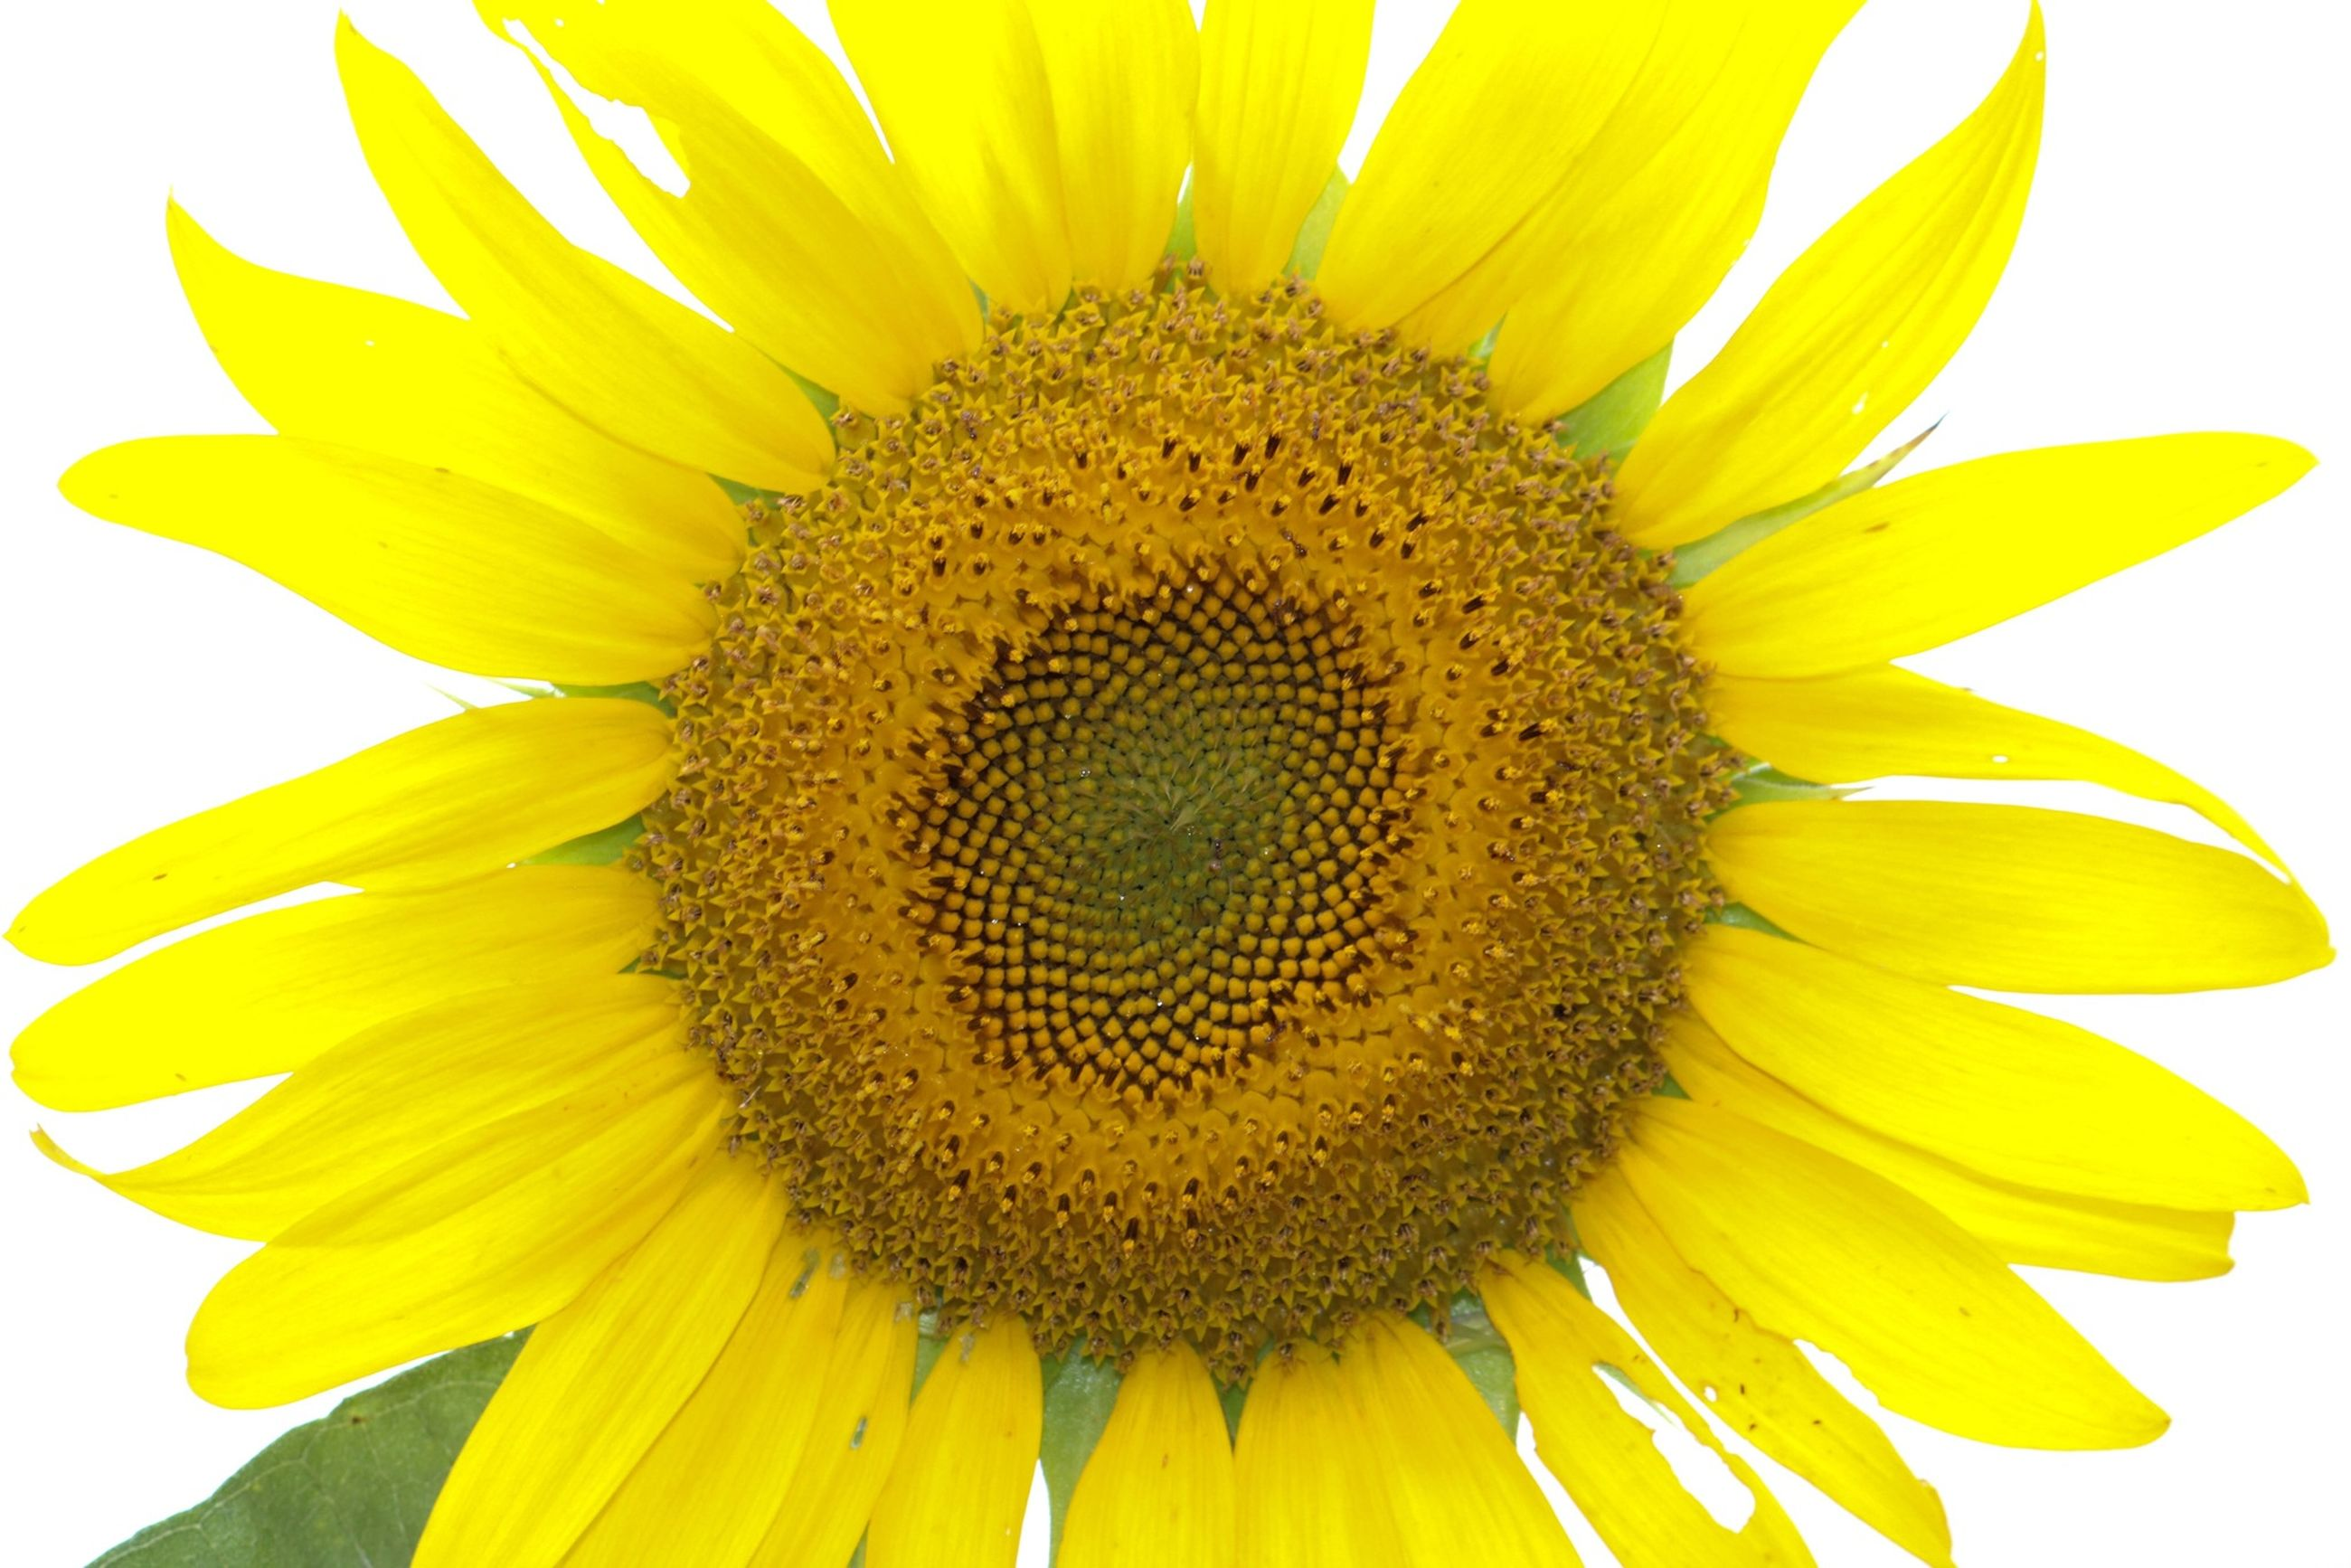 flower, yellow, petal, flower head, freshness, sunflower, fragility, pollen, growth, beauty in nature, close-up, single flower, nature, blooming, white background, plant, clear sky, focus on foreground, no people, outdoors